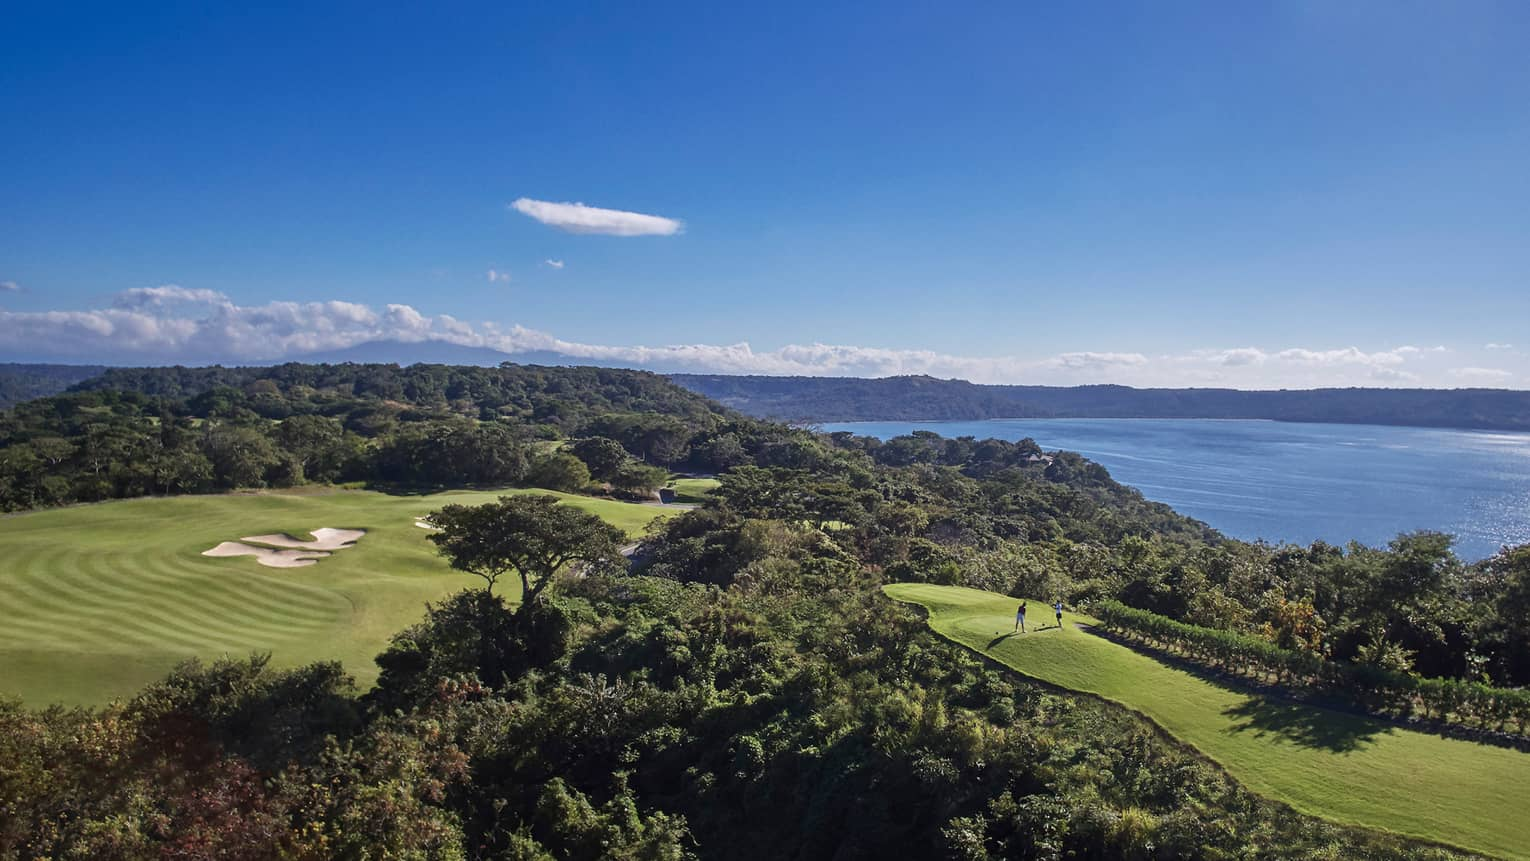 Looking down at large golf course green, trees on top of mountain, two players on hole, ocean view